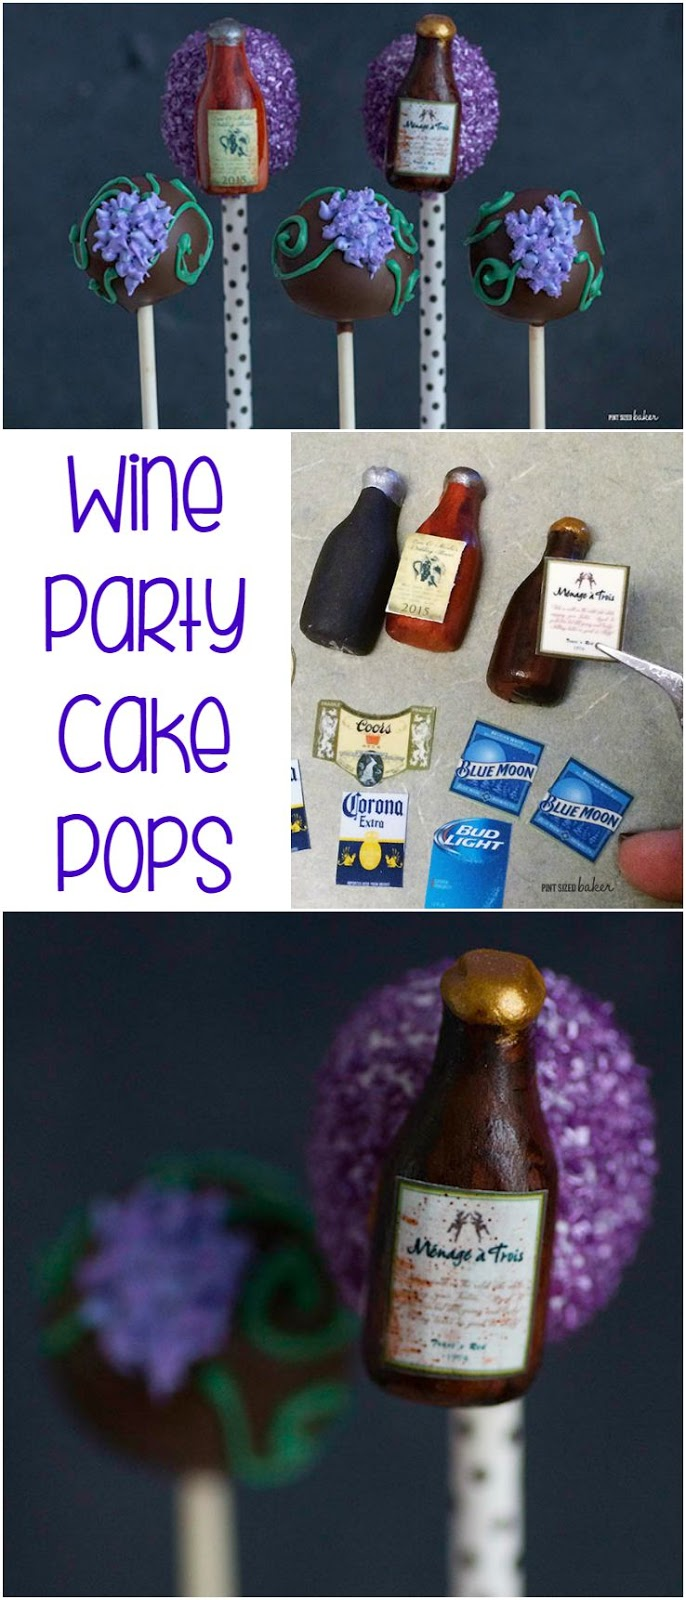 Enjoy a wine party with these fun Wine Bottle Cake Pops for you next girls night in. They also make a great wedding favor!